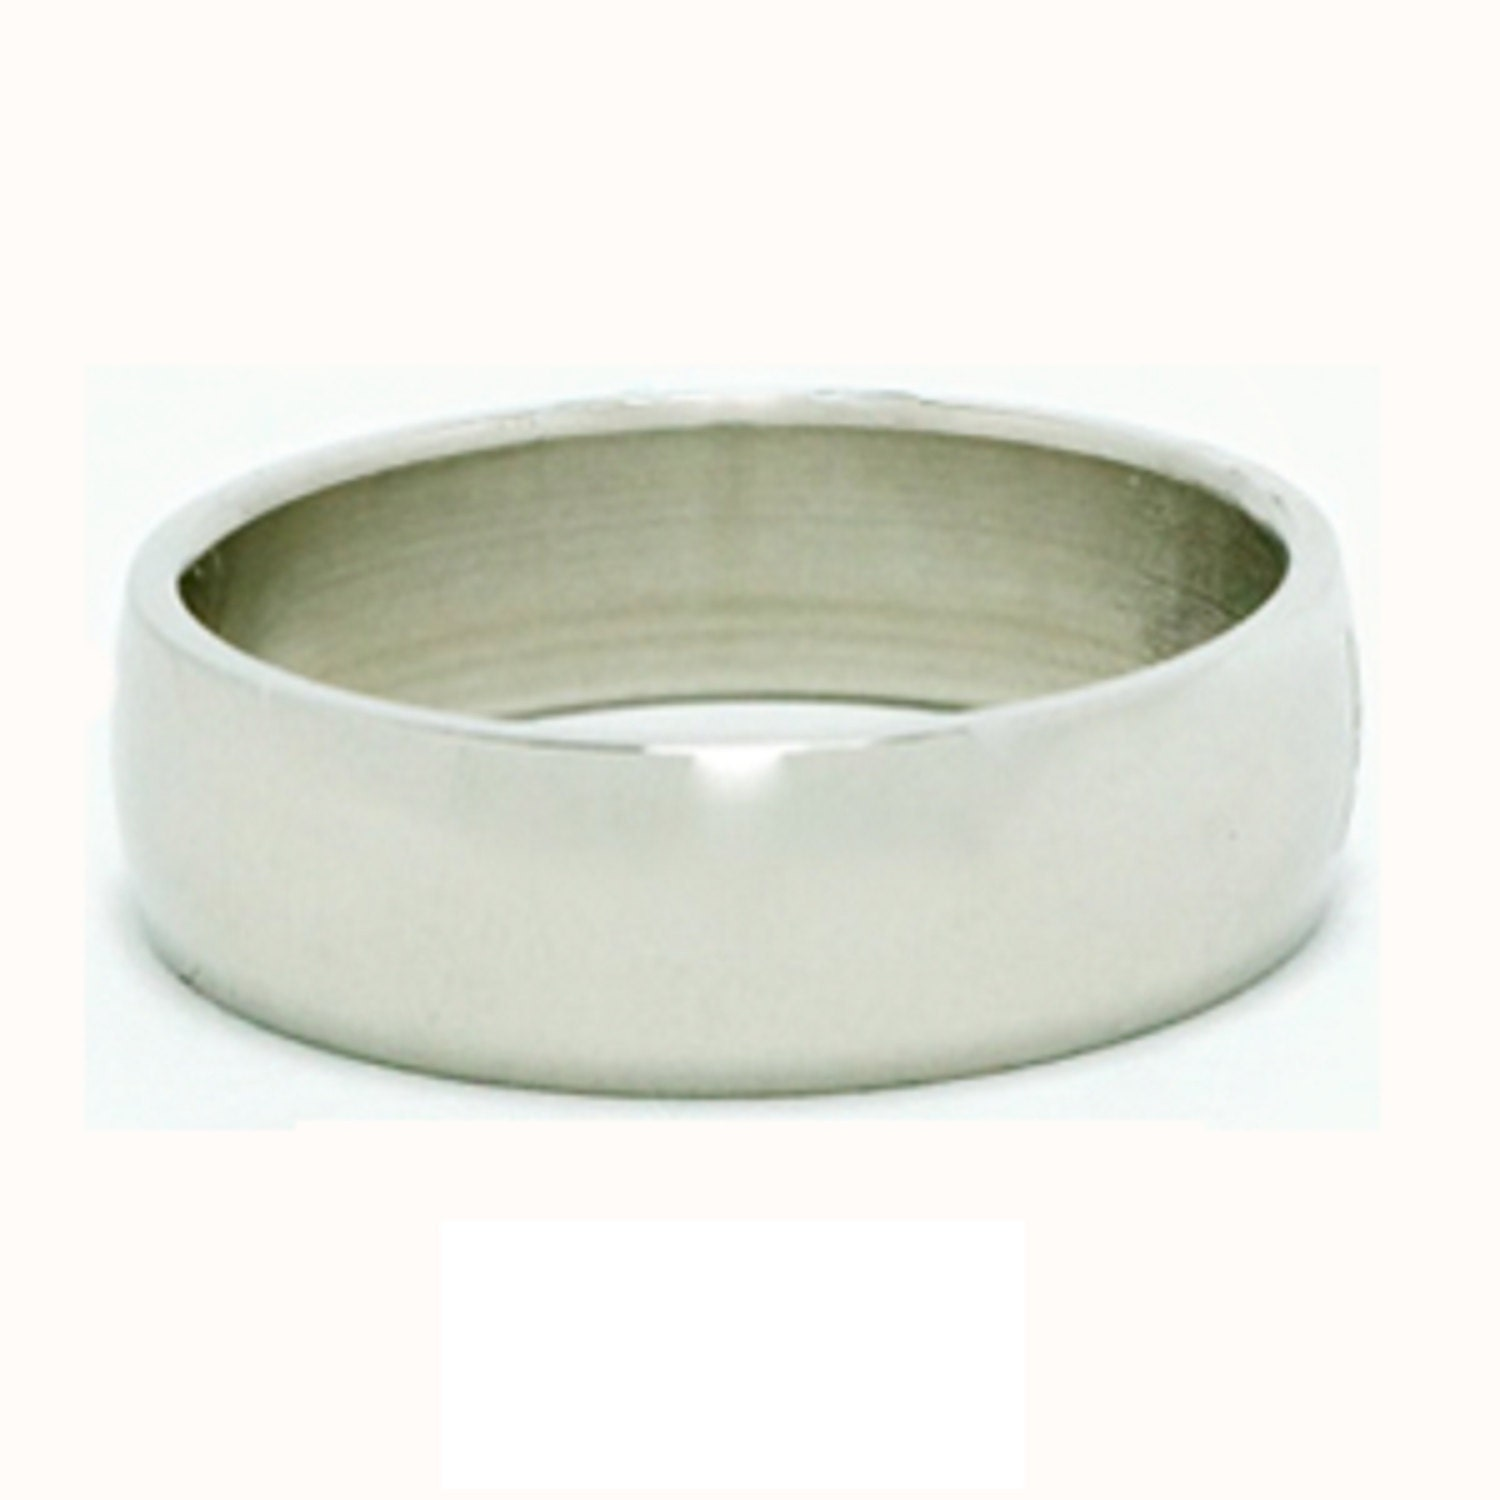 Stainless Steel Low Dome Name Ring 5mm